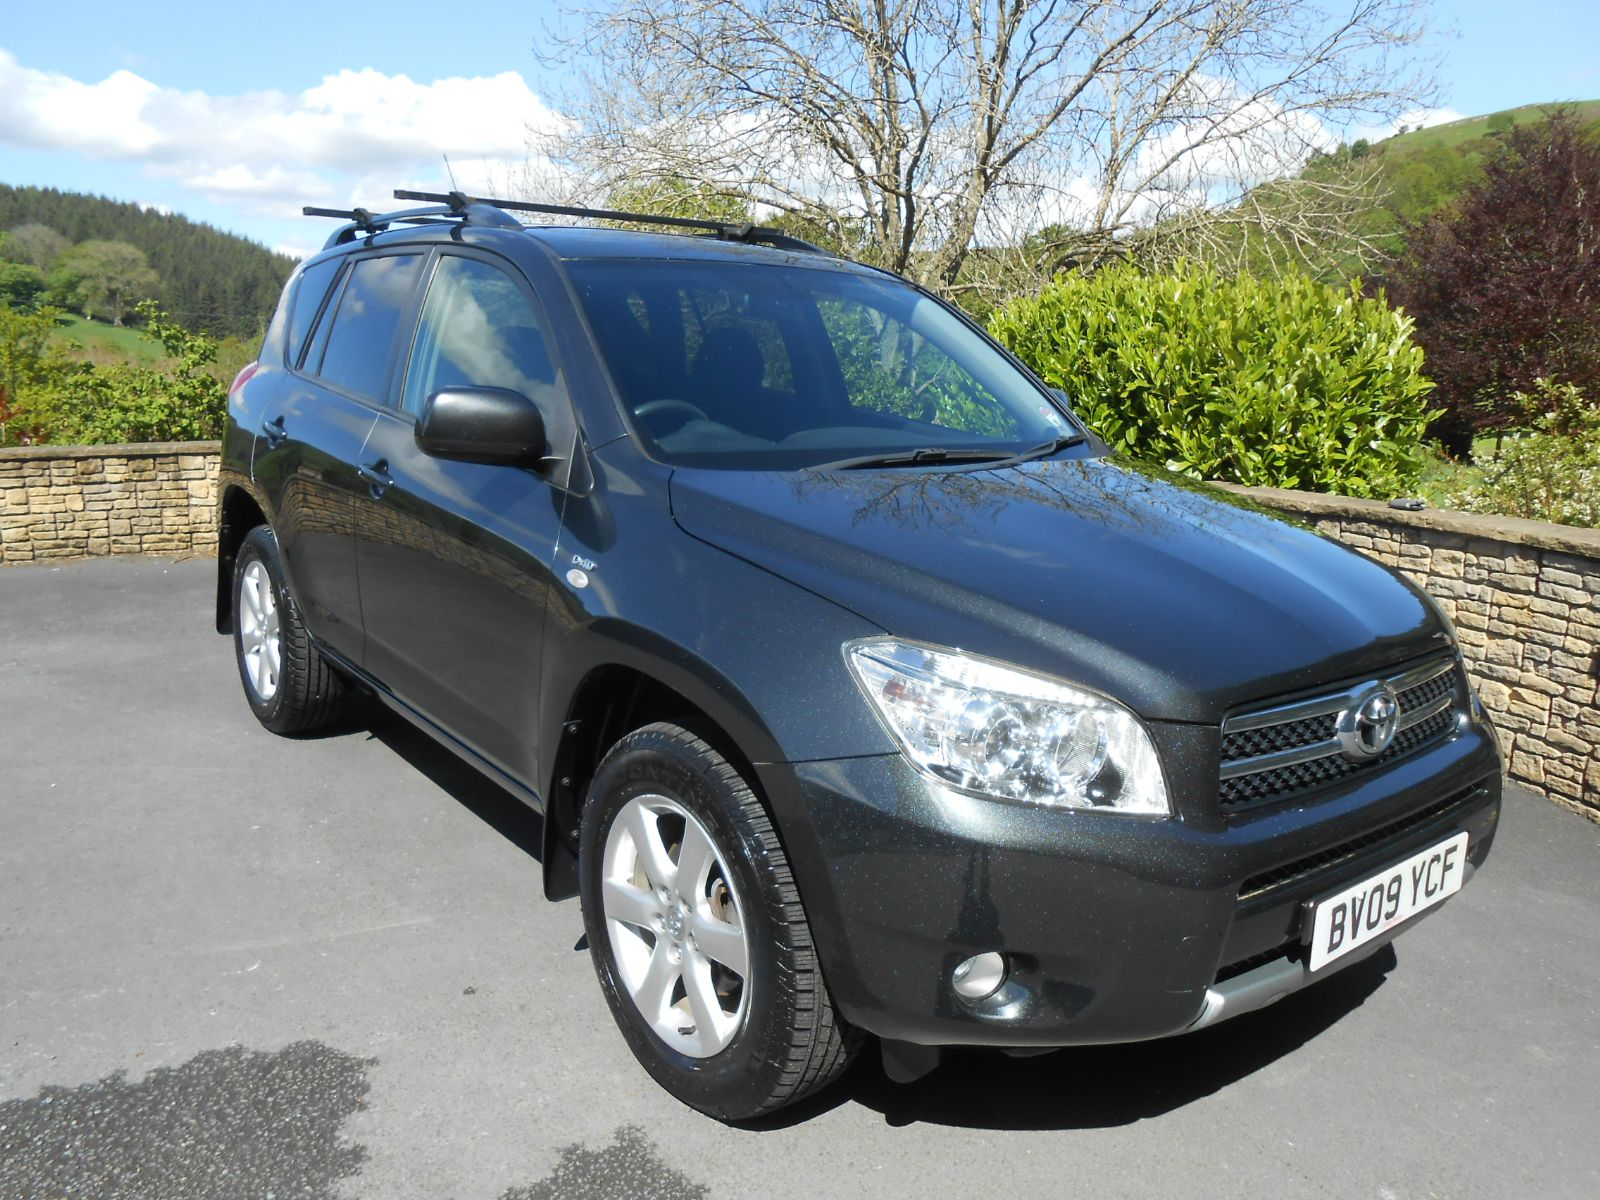 toyota rav4 2 2 d 4d xt r car for sale llanidloes powys mid wales kevin jones cars used cars. Black Bedroom Furniture Sets. Home Design Ideas